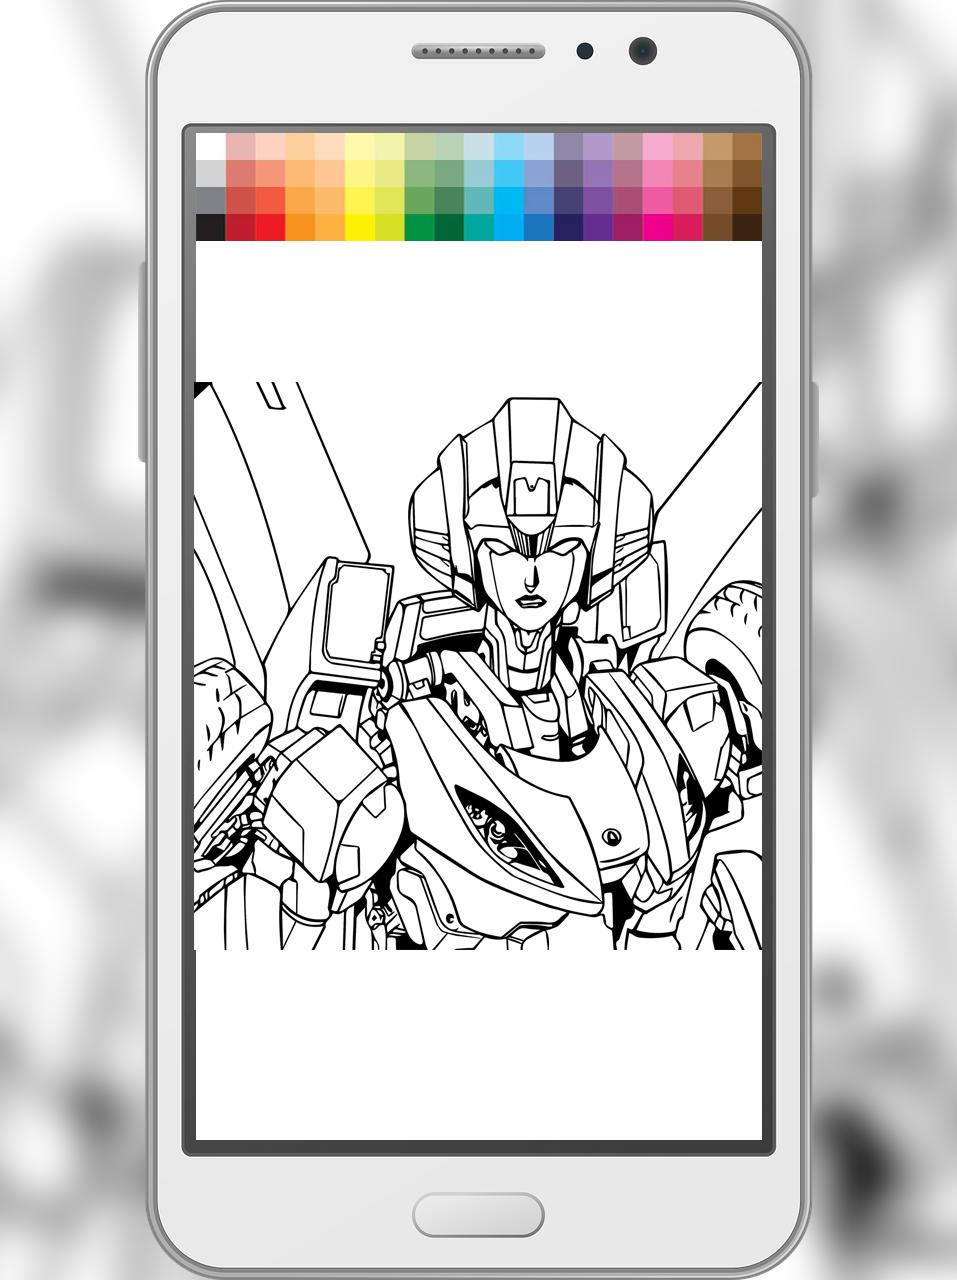 Coloring Pages Free Coloring Book安卓下載 安卓版apk